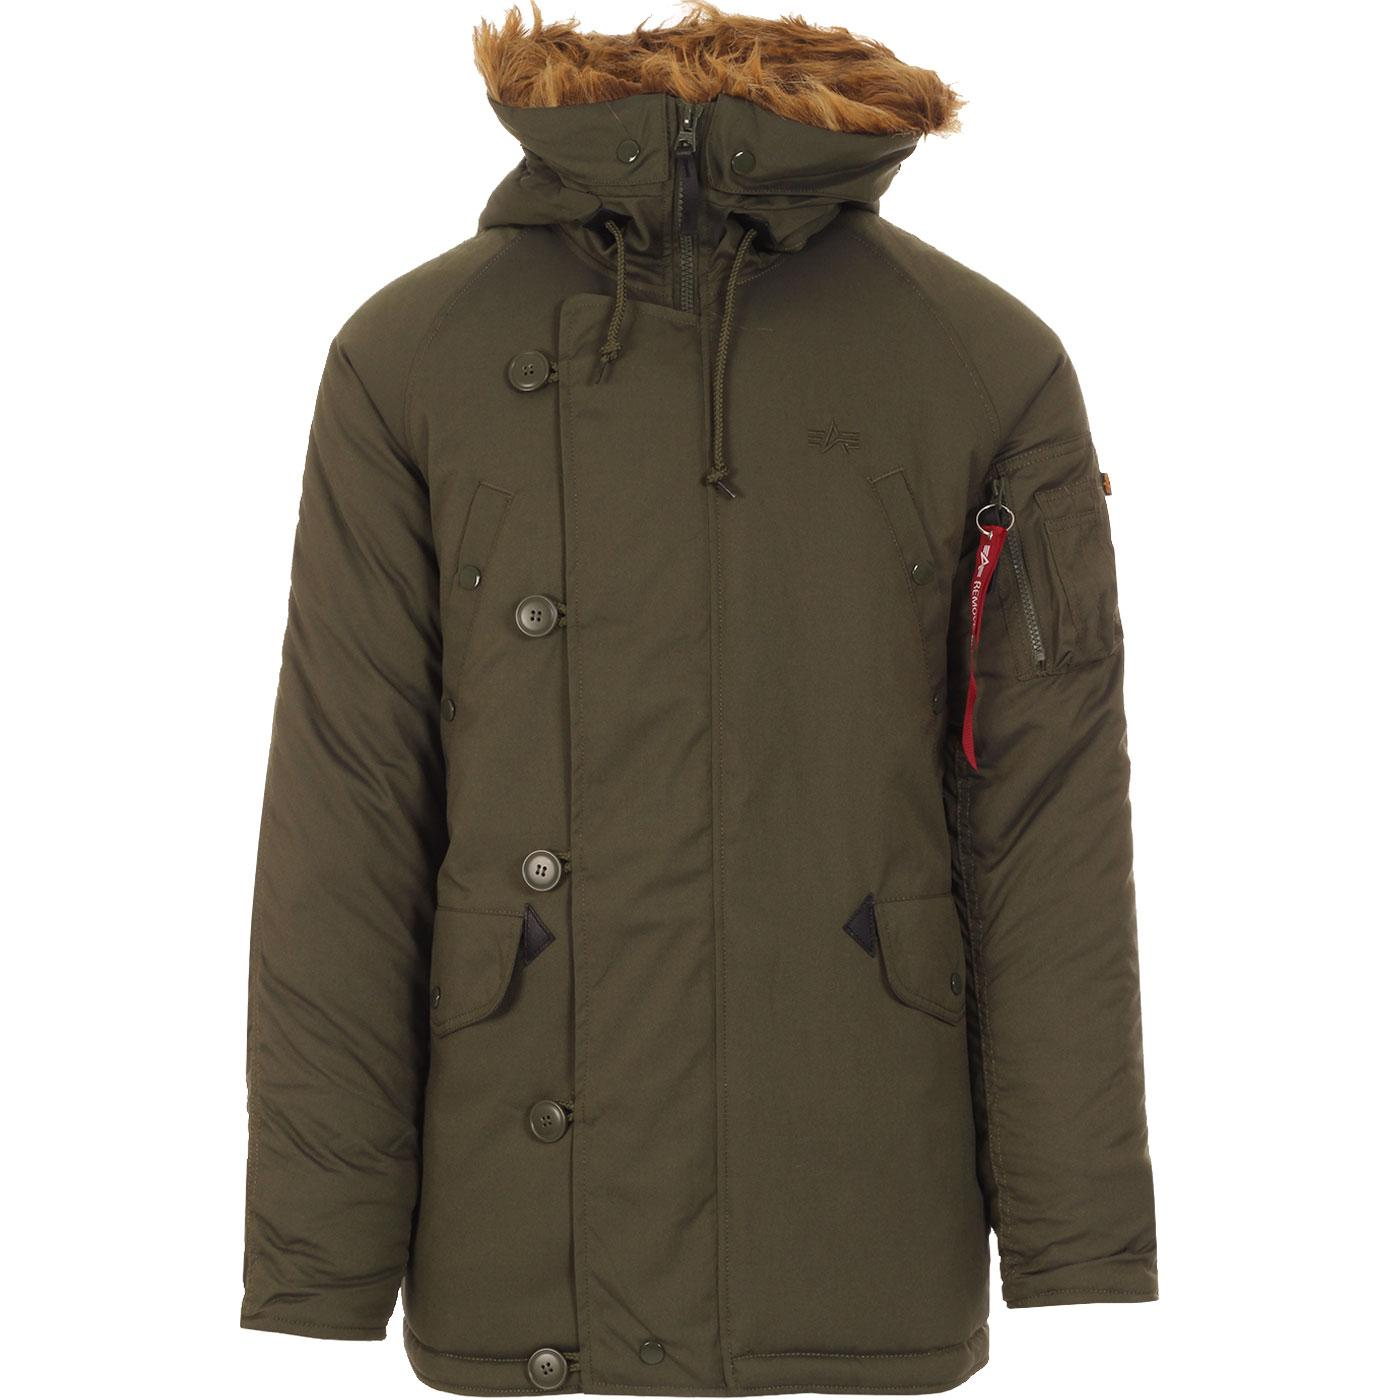 Explorer ALPHA INDUSTRIES Mens Snokel Parka Jacket